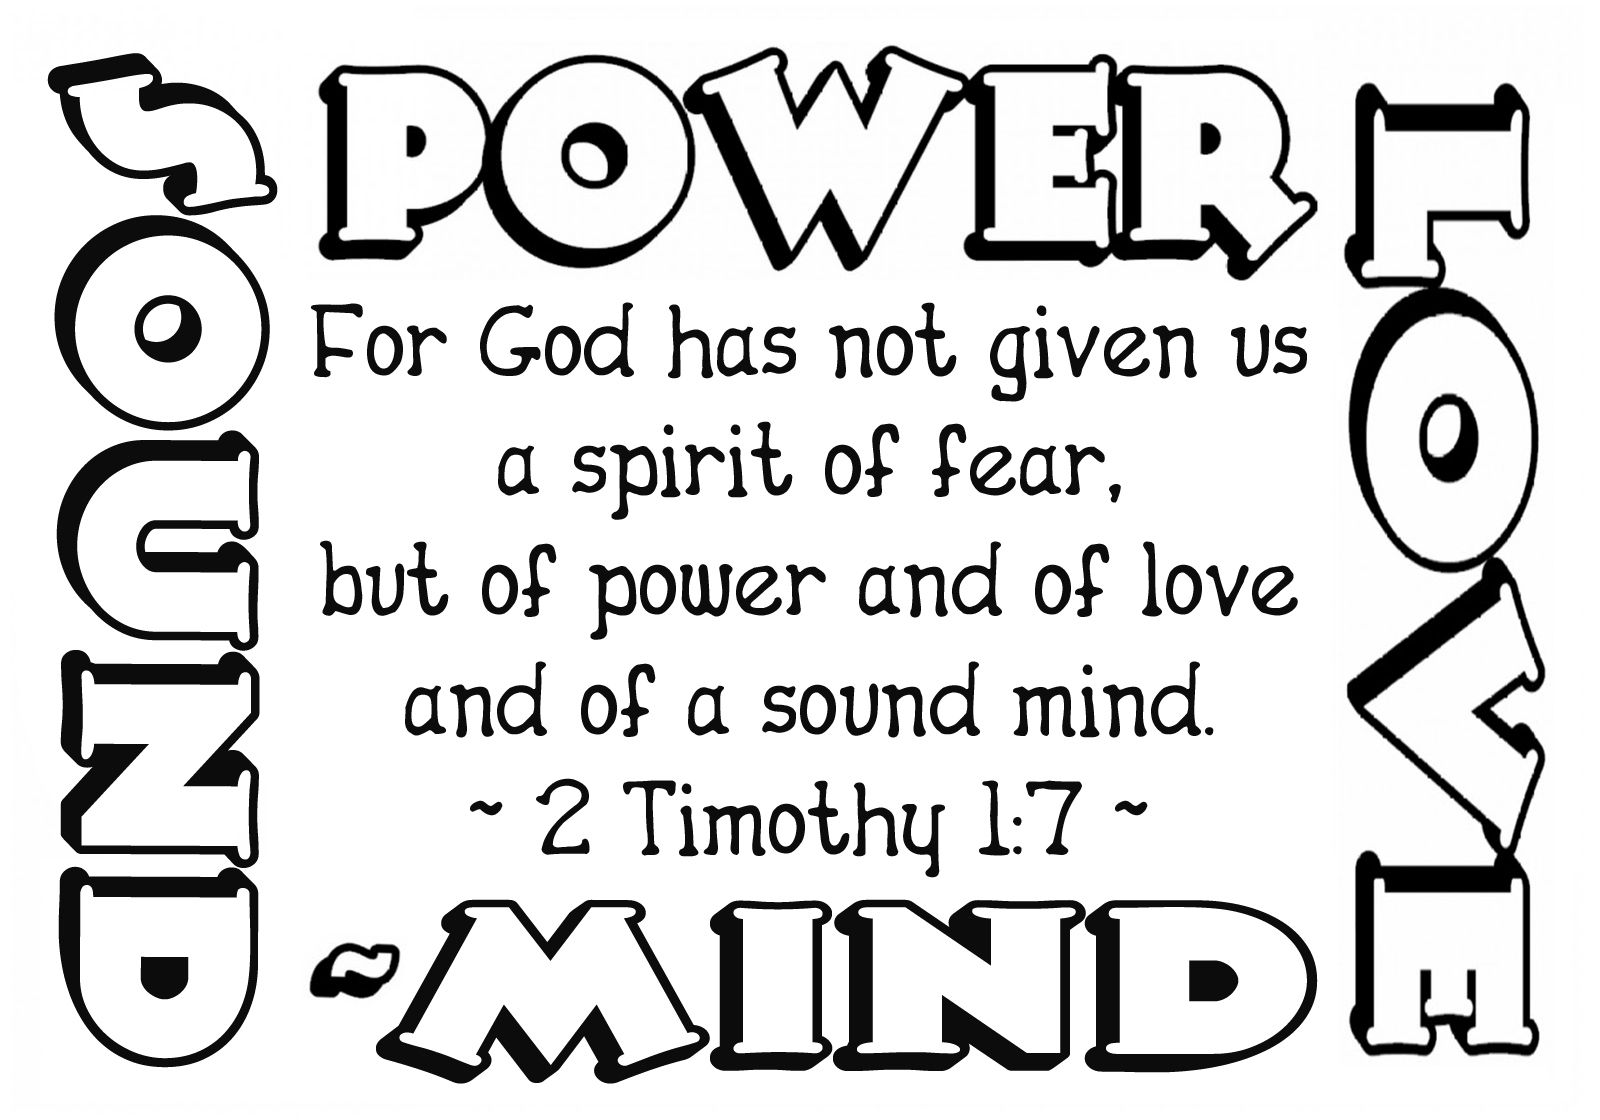 gods power coloring page children39s gems in my treasure box sowing the word coloring page gods power